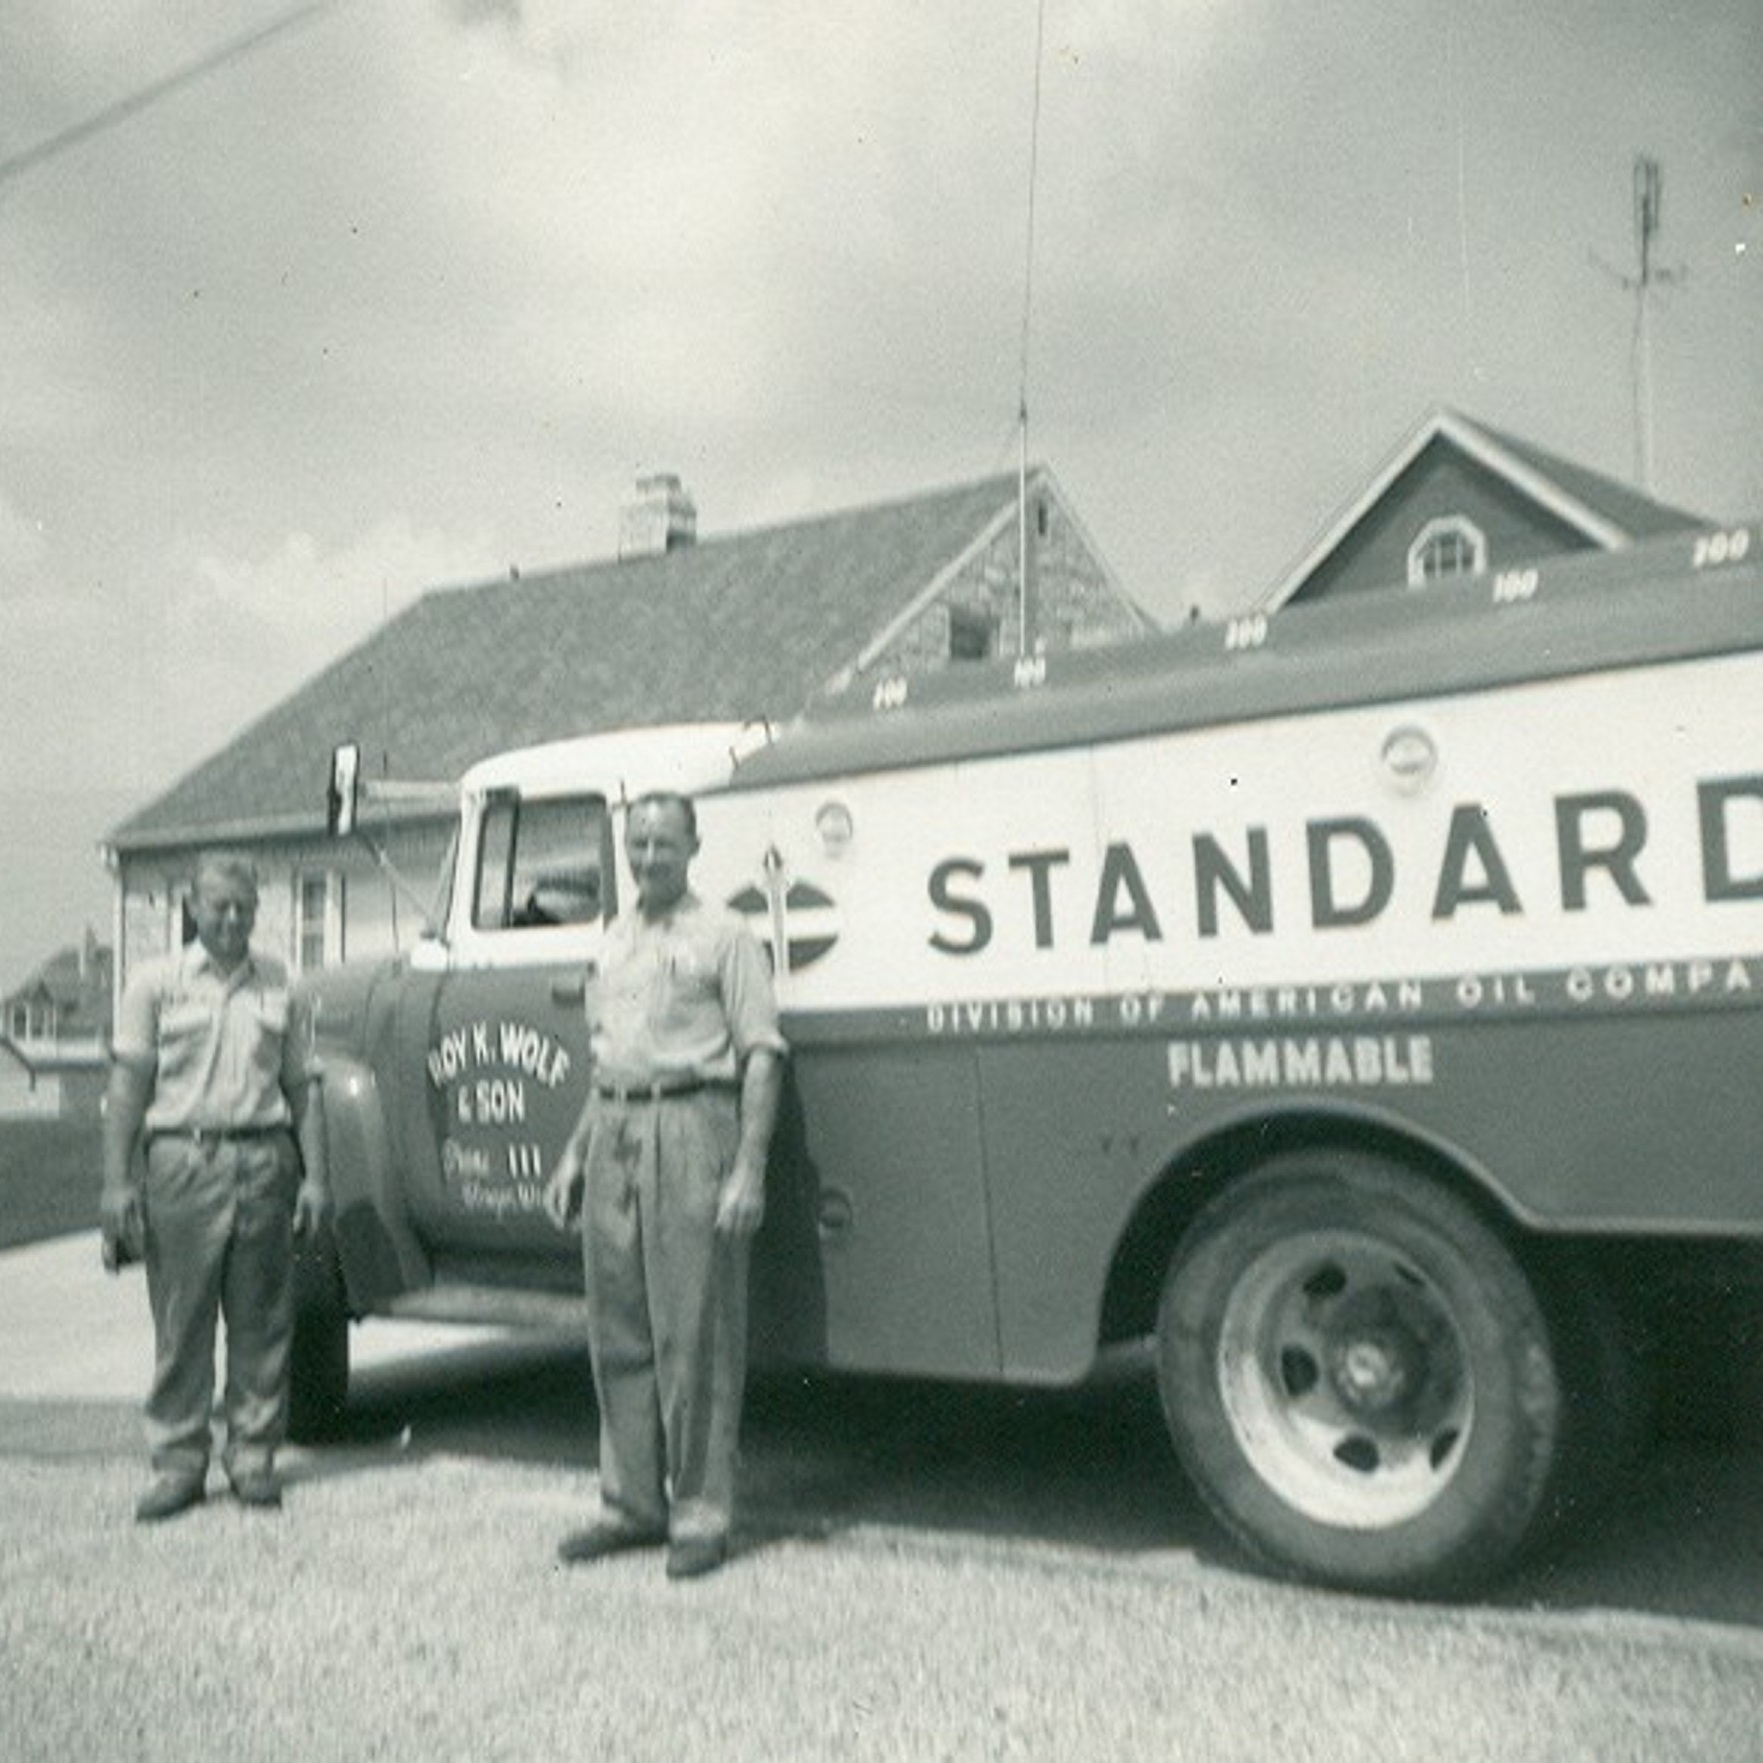 1950's - Roy's son Ed joined the business. Ed held many tasks from truck driving to burner service repair.